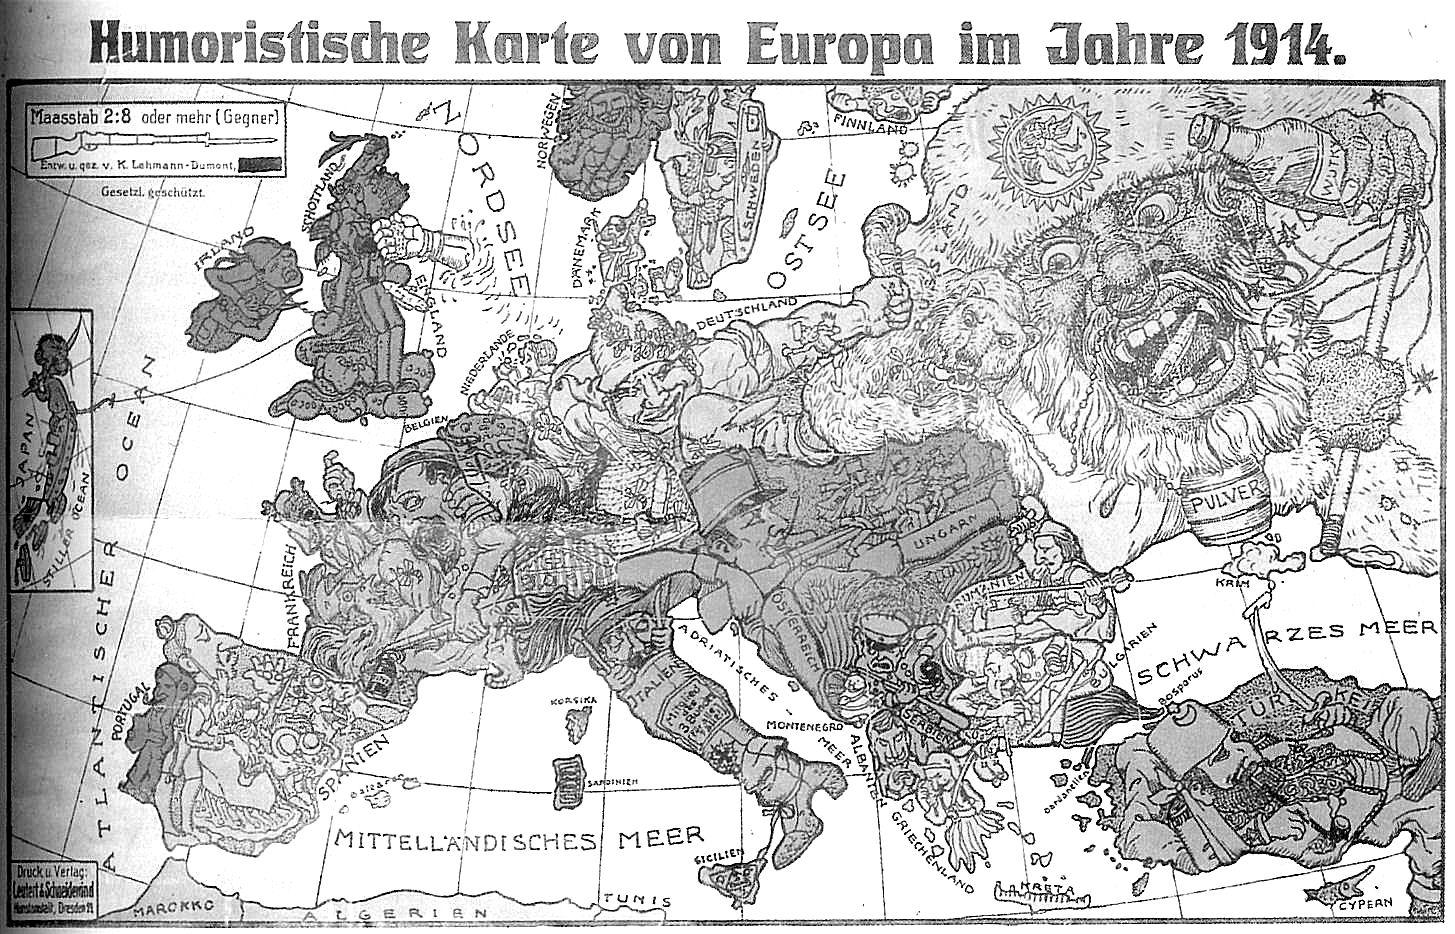 an analysis of germany in world war i Why germany really lost world war ii  from a purely fuel standpoint, the fall of france has to be considered the greatest victory of the war for germany that is, for the first and only time, hitler ended a campaign with more oil than he had when he started  yet america remained cautious for a time a pre-war us navy analysis.